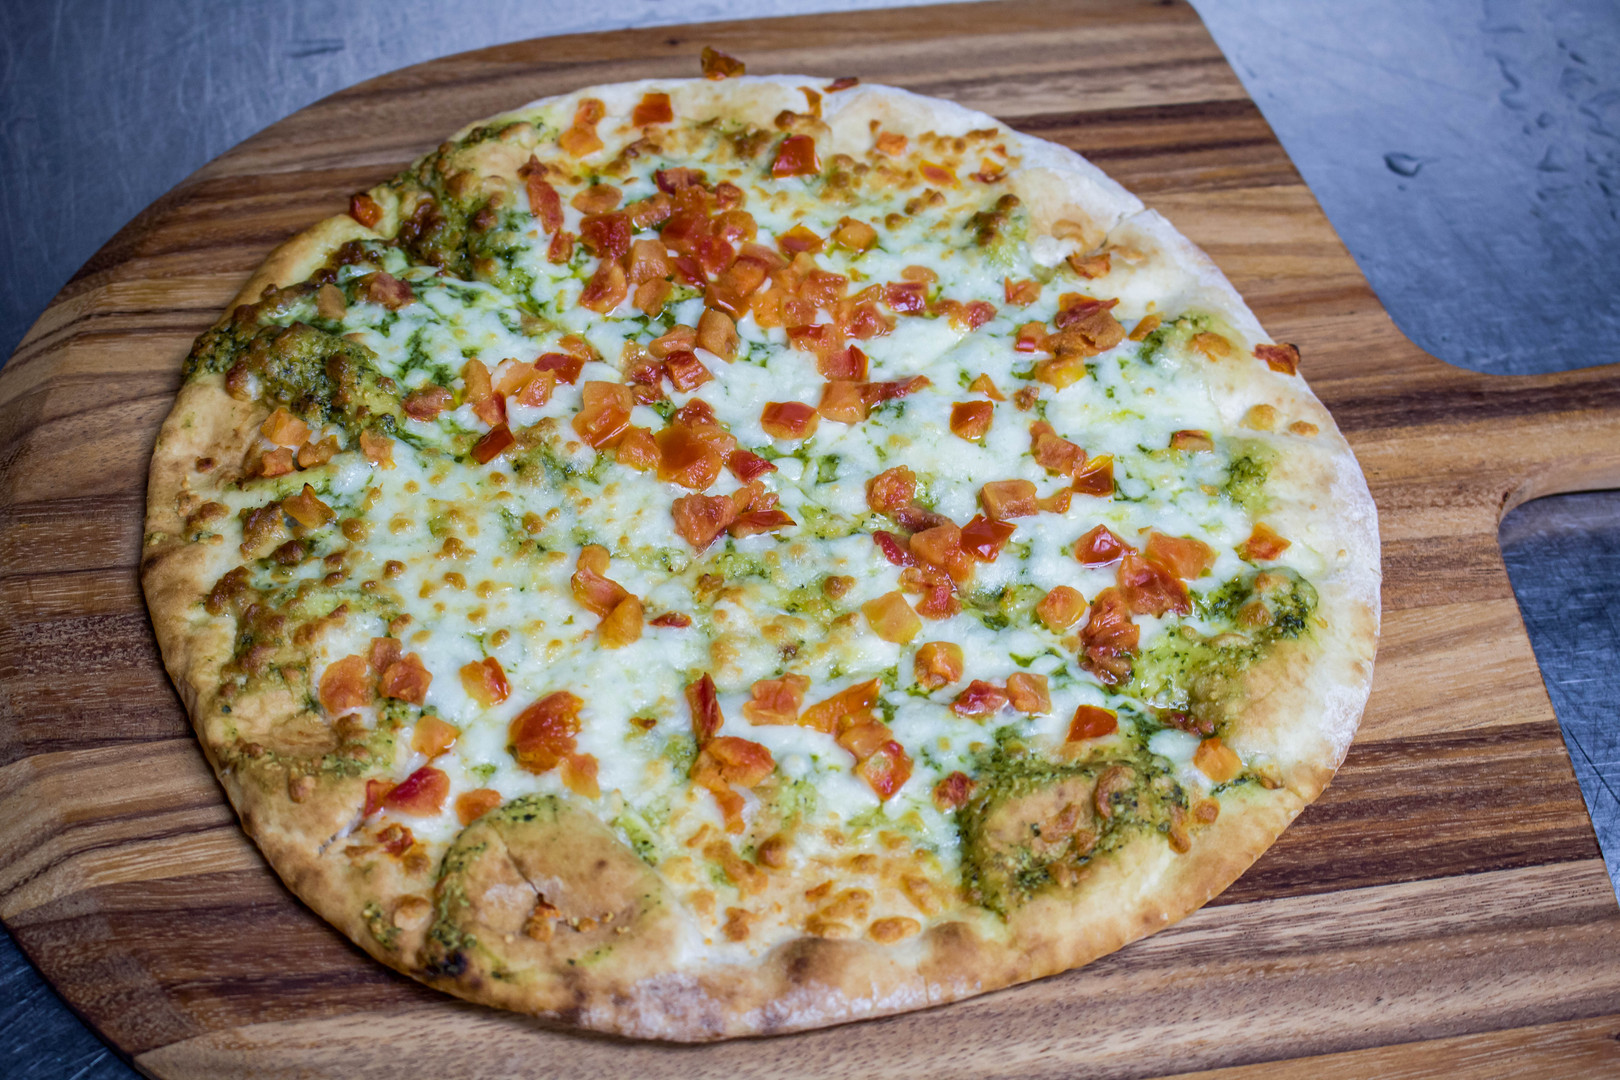 Pesto Pizza shot by Miami Food Photographer Jorge Alberto Perez